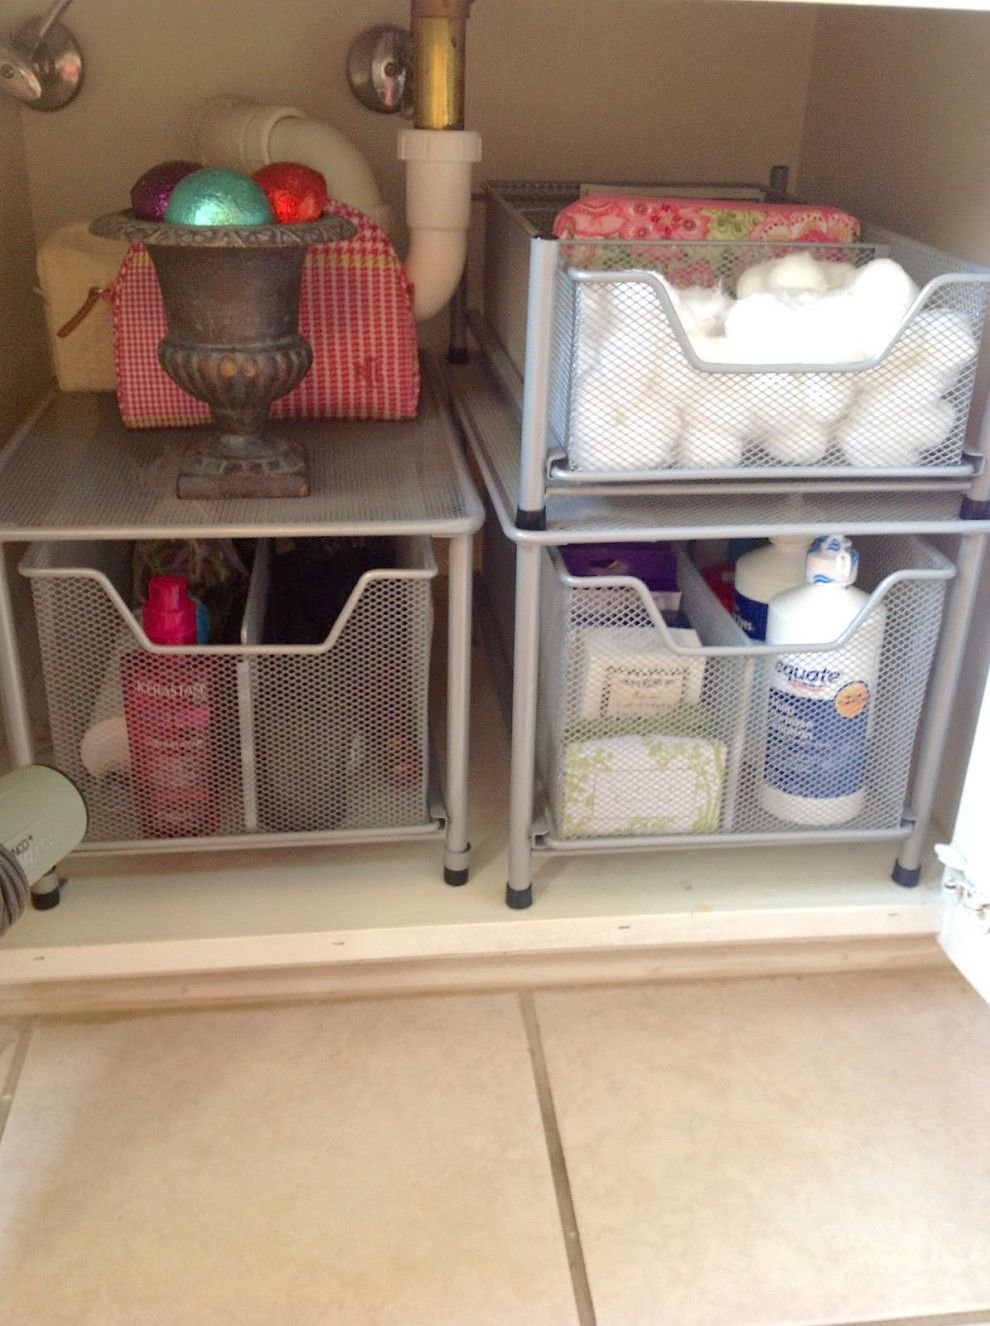 42 Clever Organizing Ideas To Make Your Life So Much Easier. Storage For  Small SpacesBathroom ...